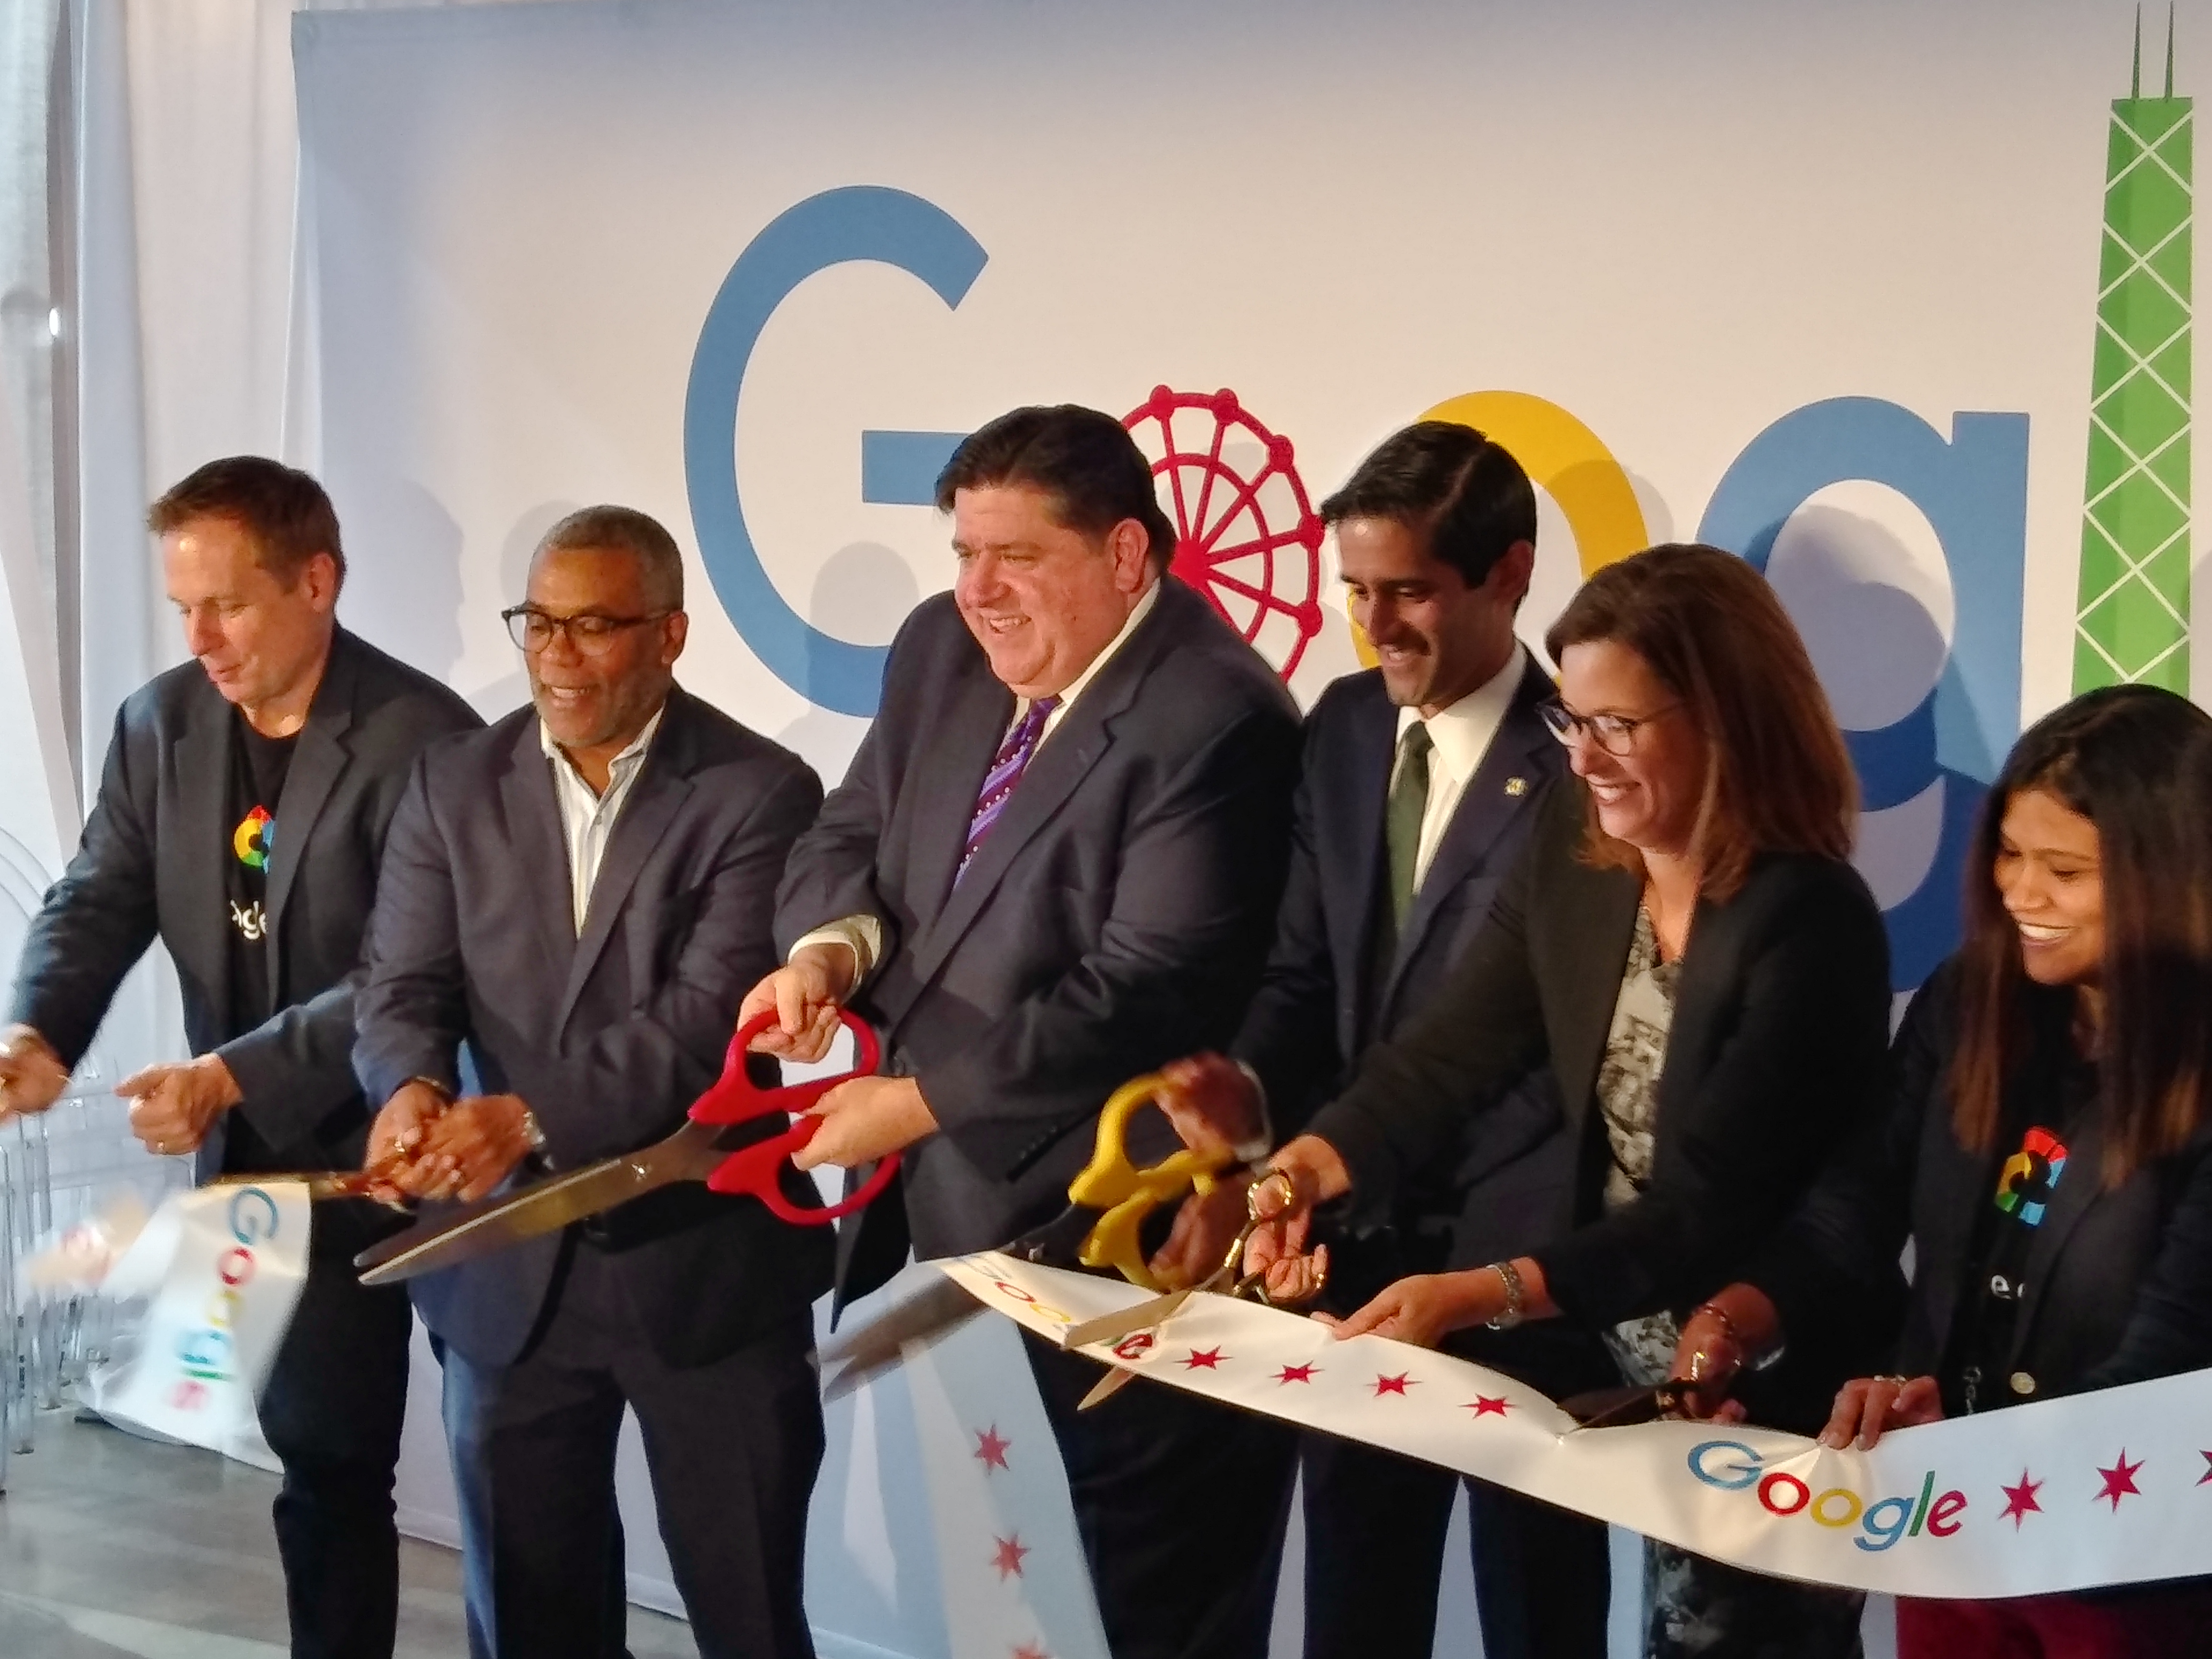 Gov. J.B. Pritzker cuts the ribbon Thursday to open Google's office at 210 N. Carpenter St.